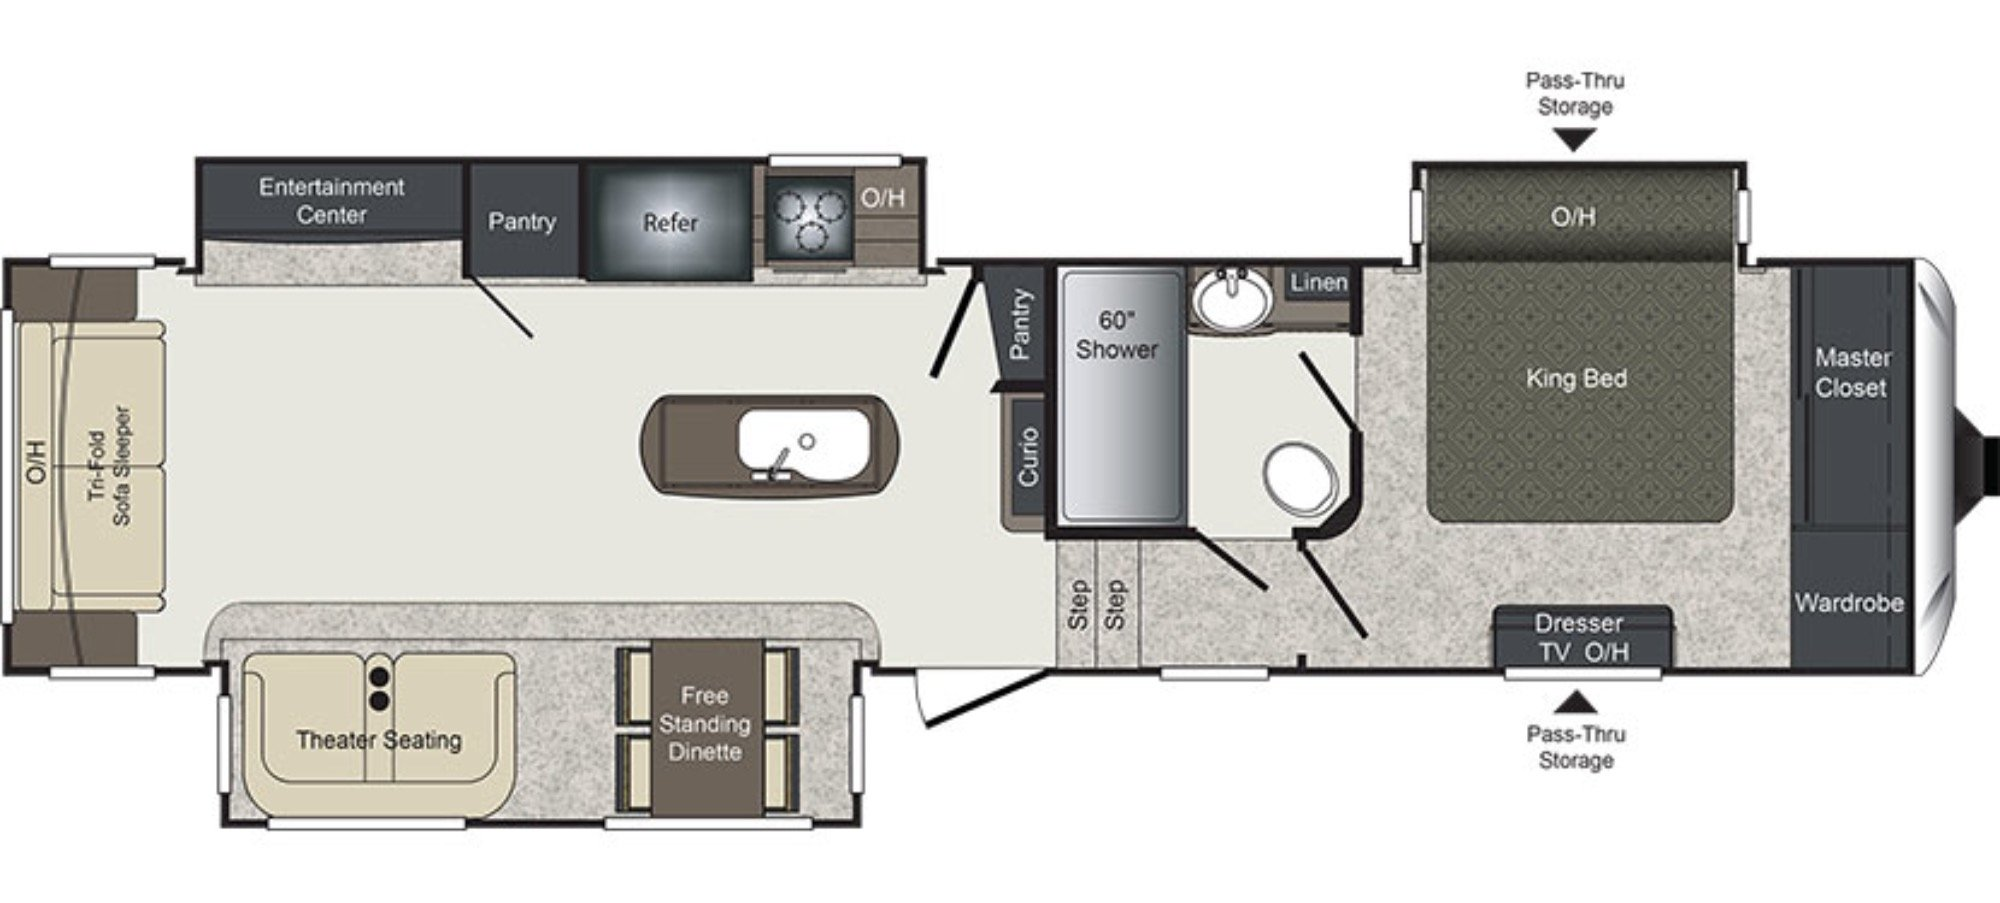 View Floor Plan for 2017 KEYSTONE LAREDO 355RL